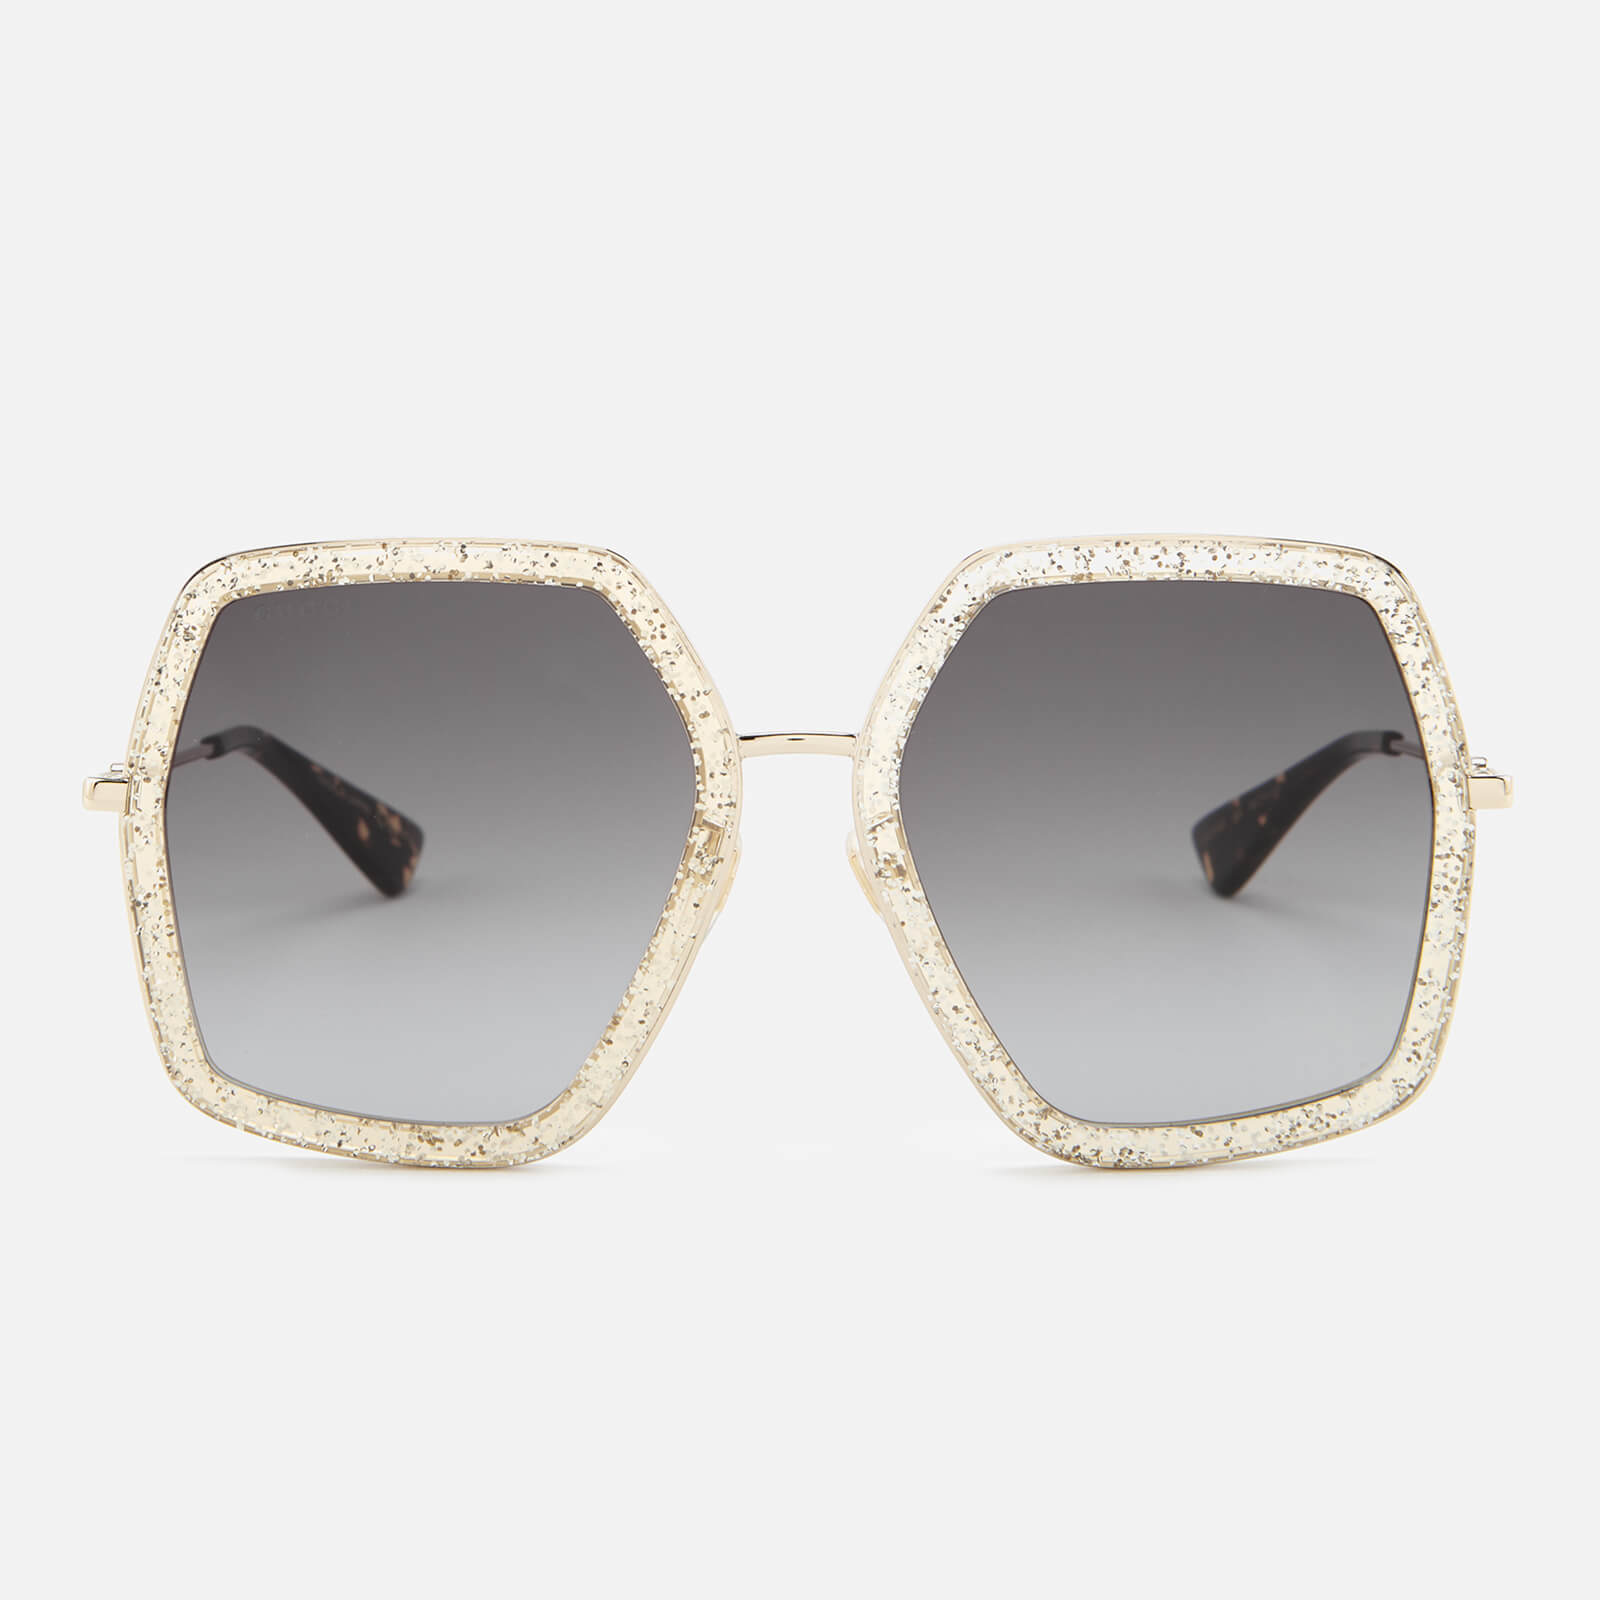 f38e6fab21 Gucci Women s Metal Square Frame Sunglasses - Gold Brown - Free UK Delivery  over £50